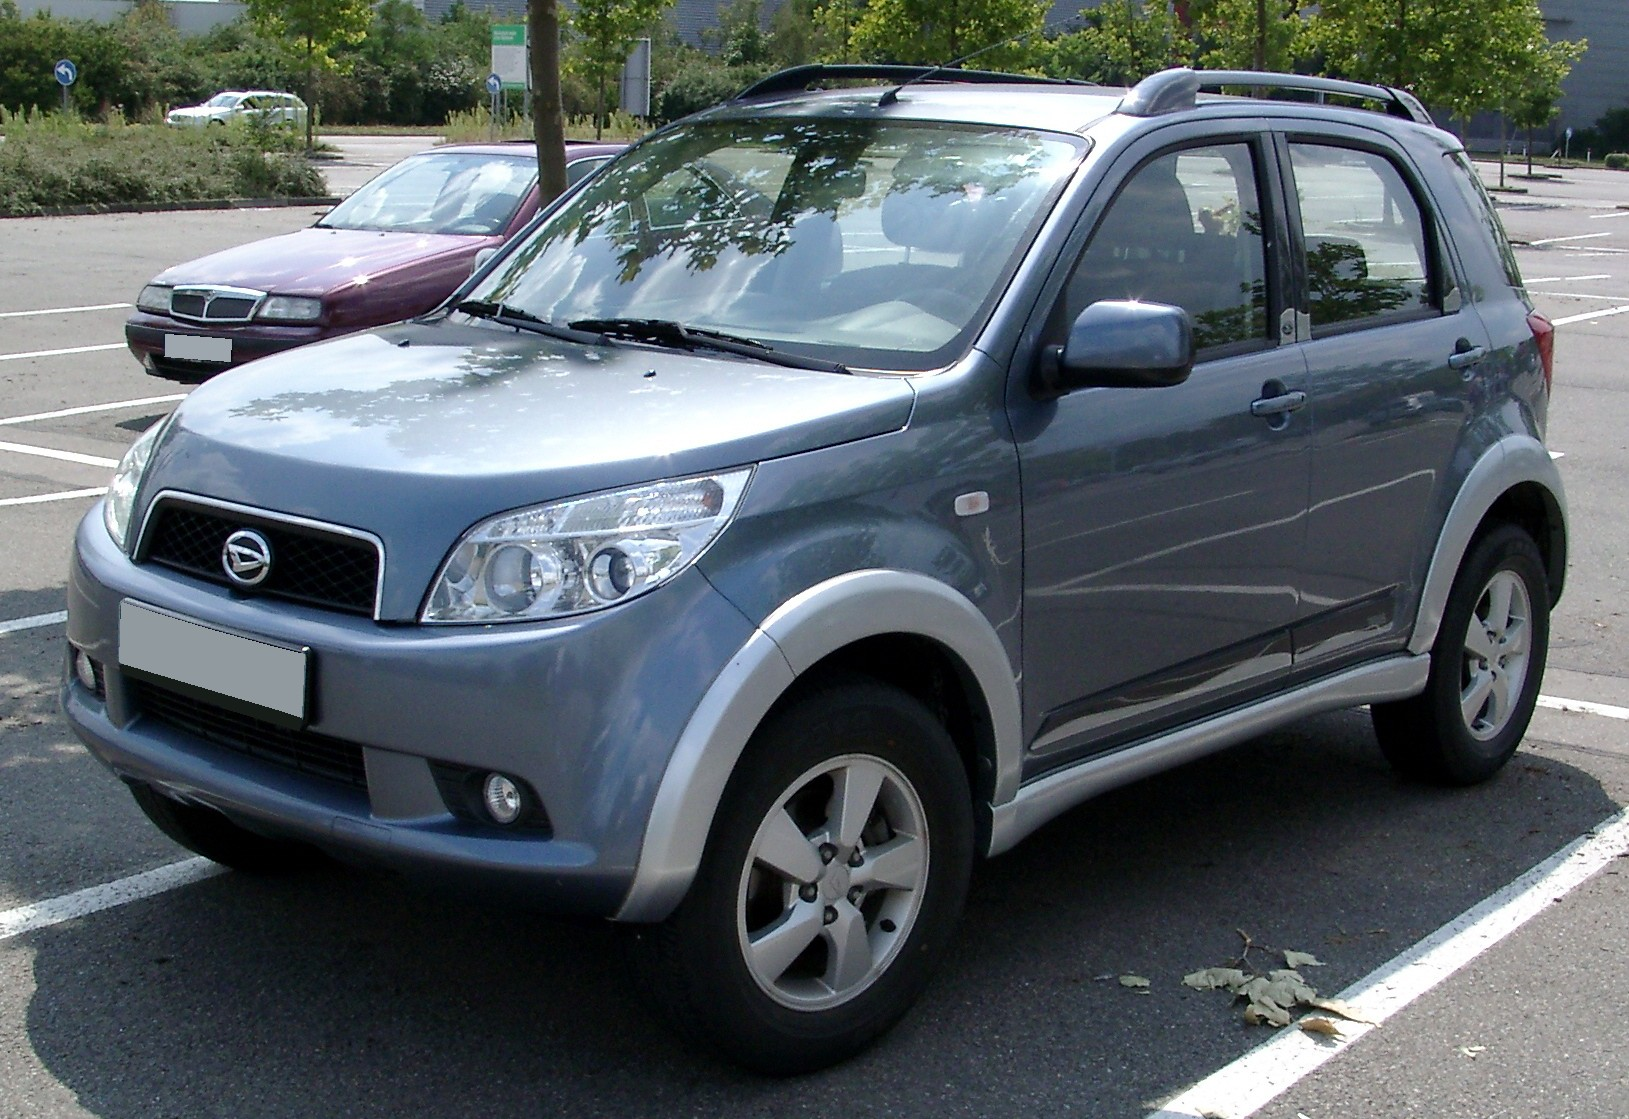 Daihatsu terios photo - 4